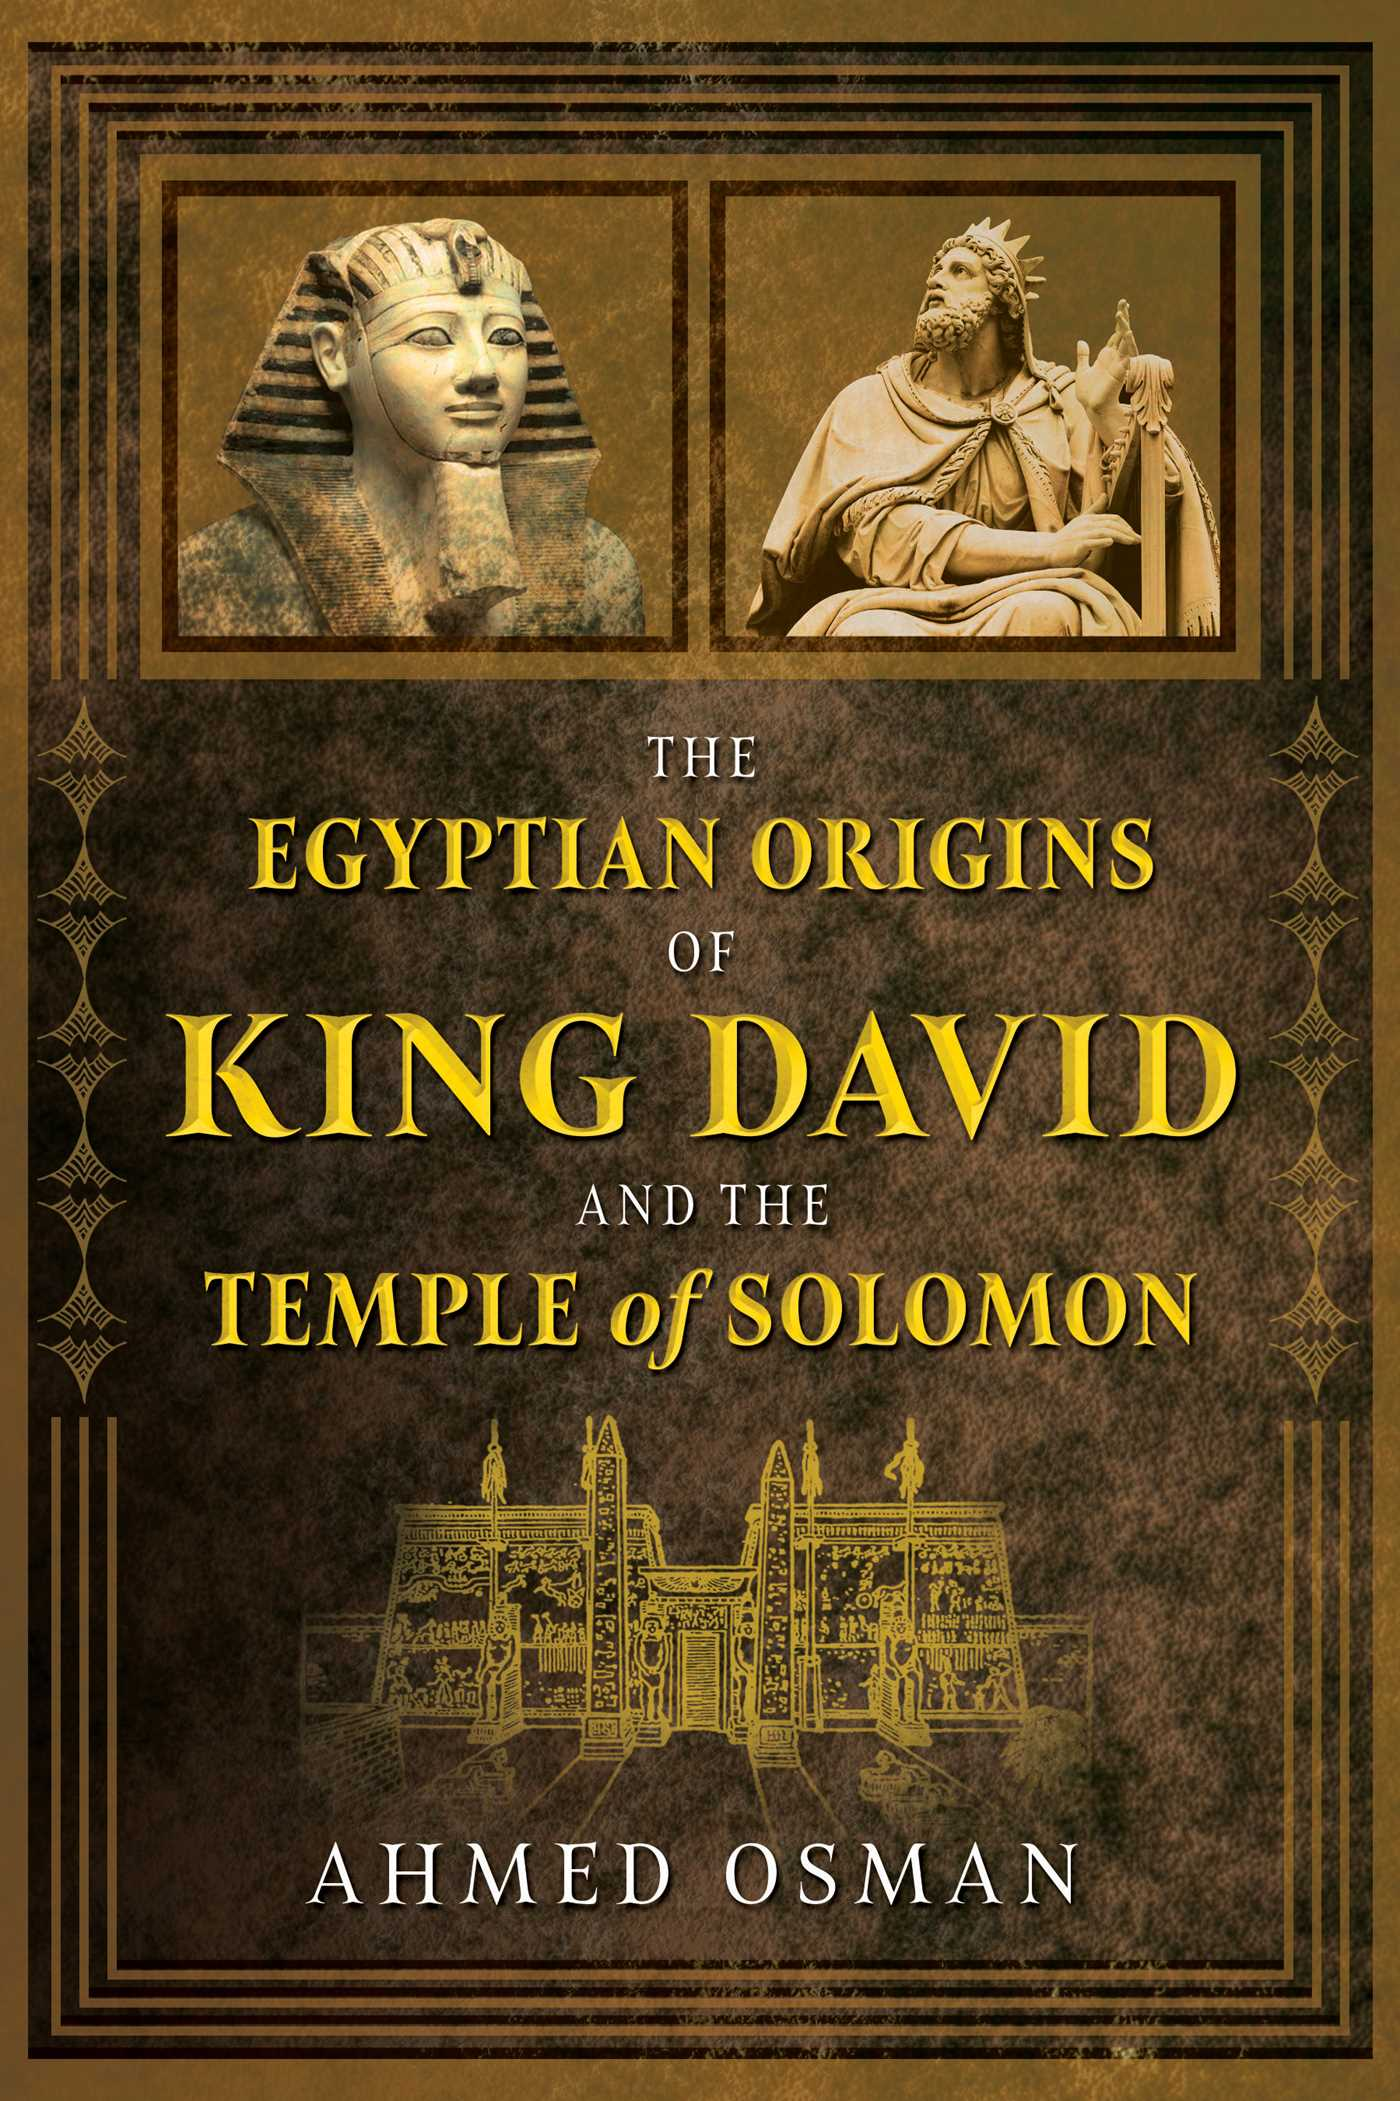 The egyptian origins of king david and the temple of solomon 9781591433019 hr